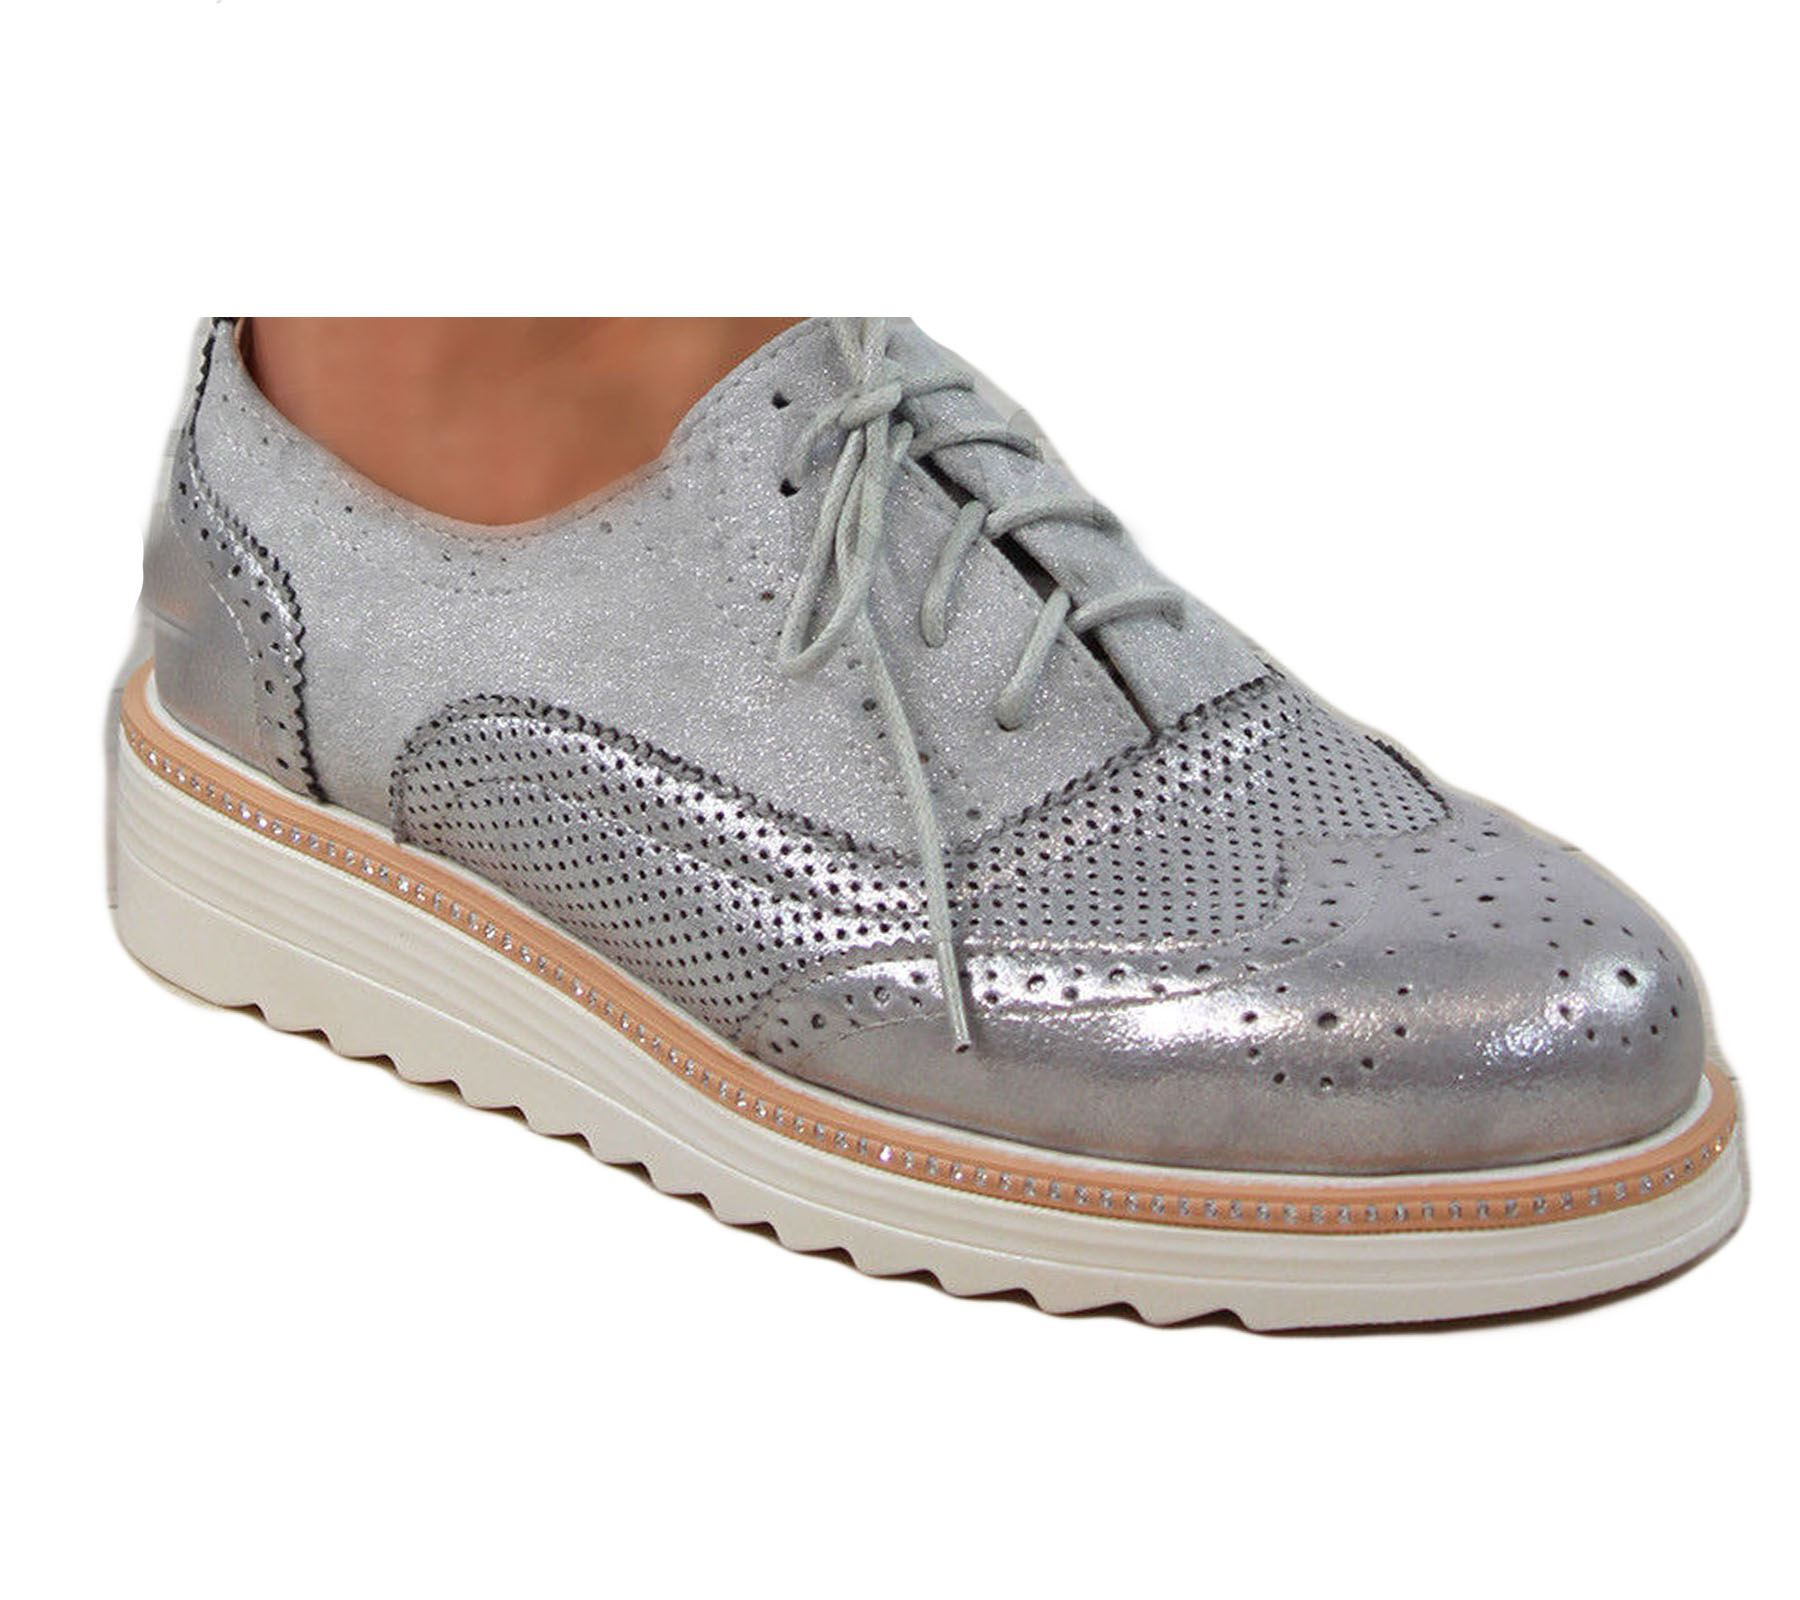 Ladies-Brogue-Lace-Up-Shoes-Womens-Oxford-Smart-Office-Loafers-Shoes miniatura 21